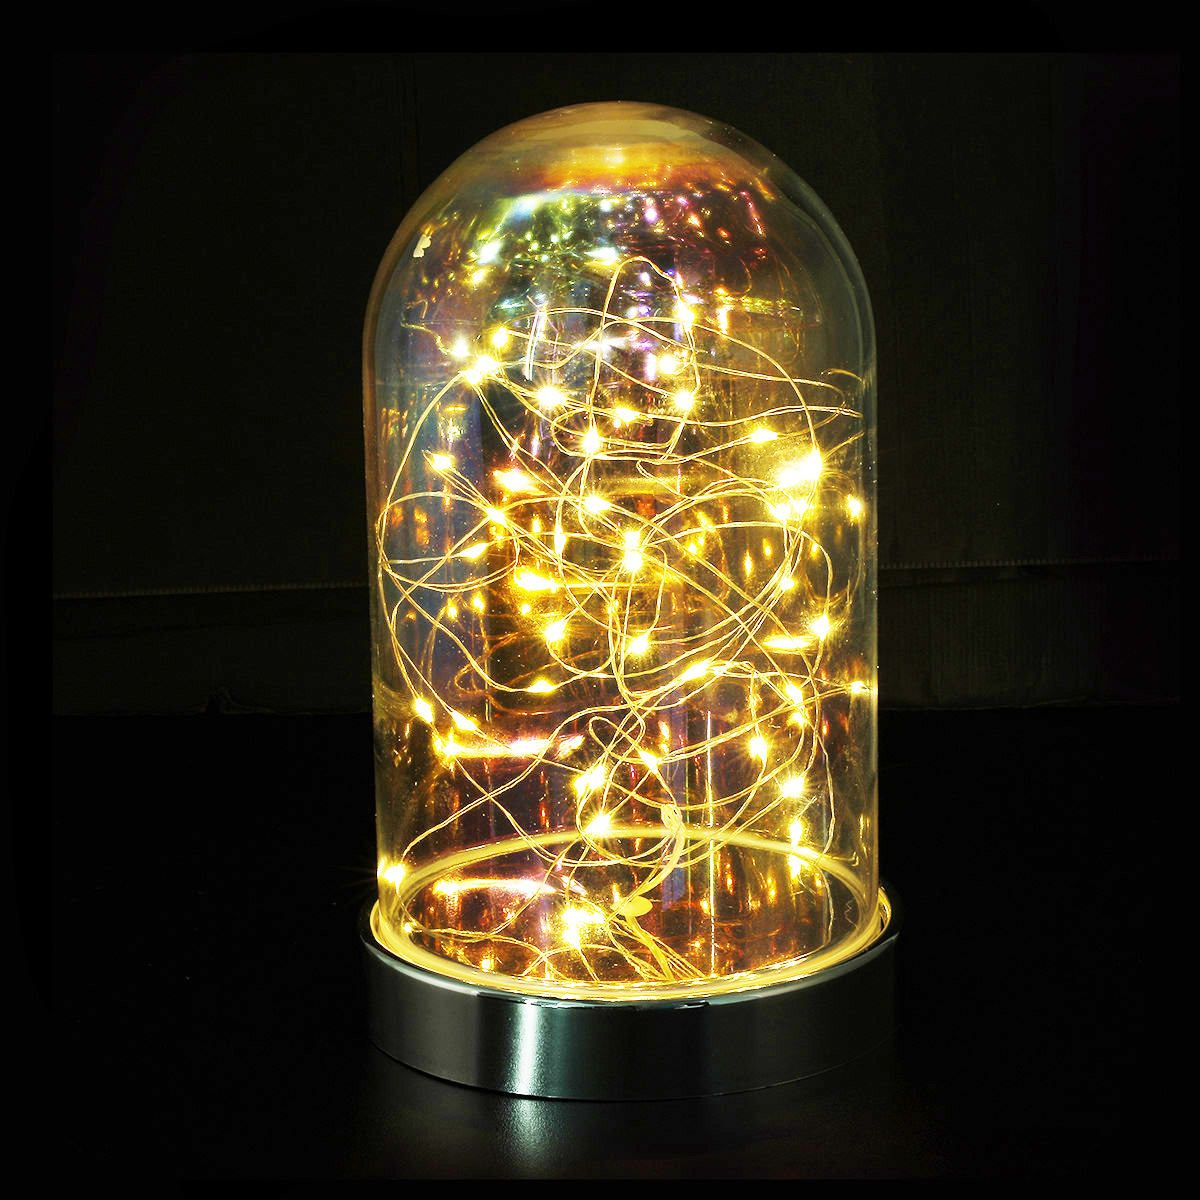 Battery Operated Glass Dome With Wire Led Lights Kmart Led Lights Glass Domes Edison Light Bulbs